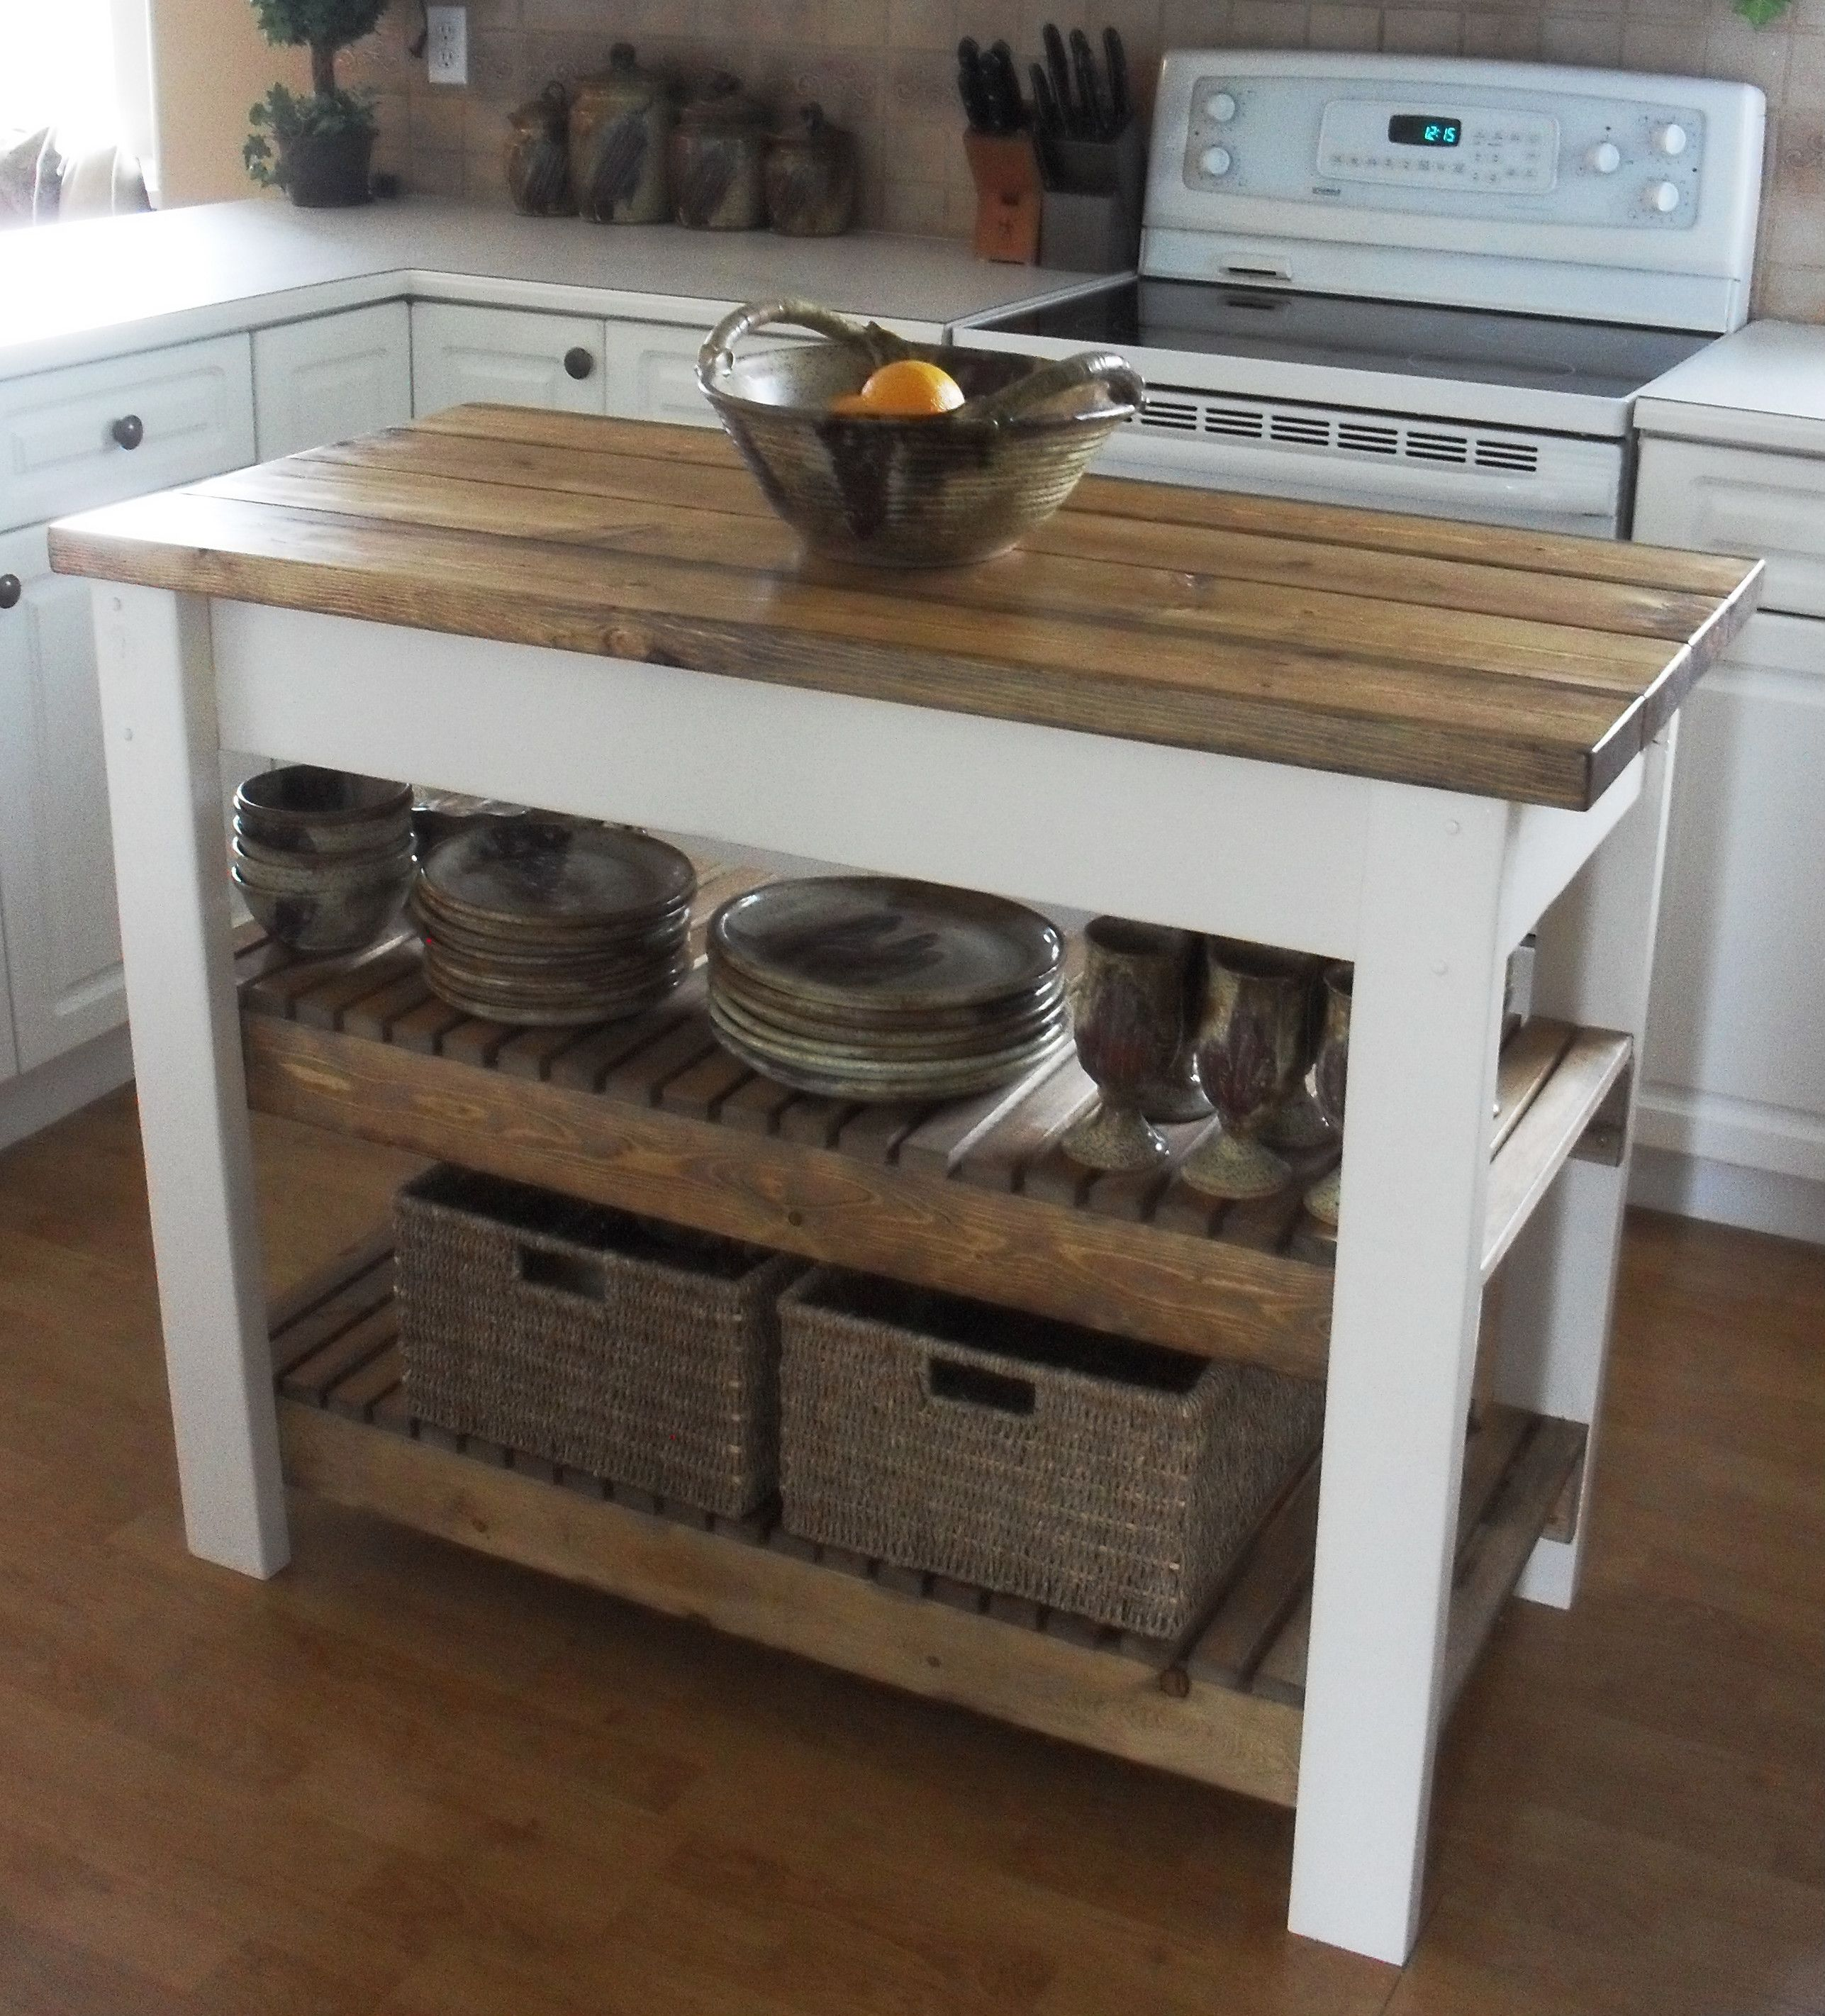 15 do it yourself hacks and clever ideas to upgrade your kitchen 12 diy kitchen island 47 in materials although id probably extend it out solutioingenieria Images